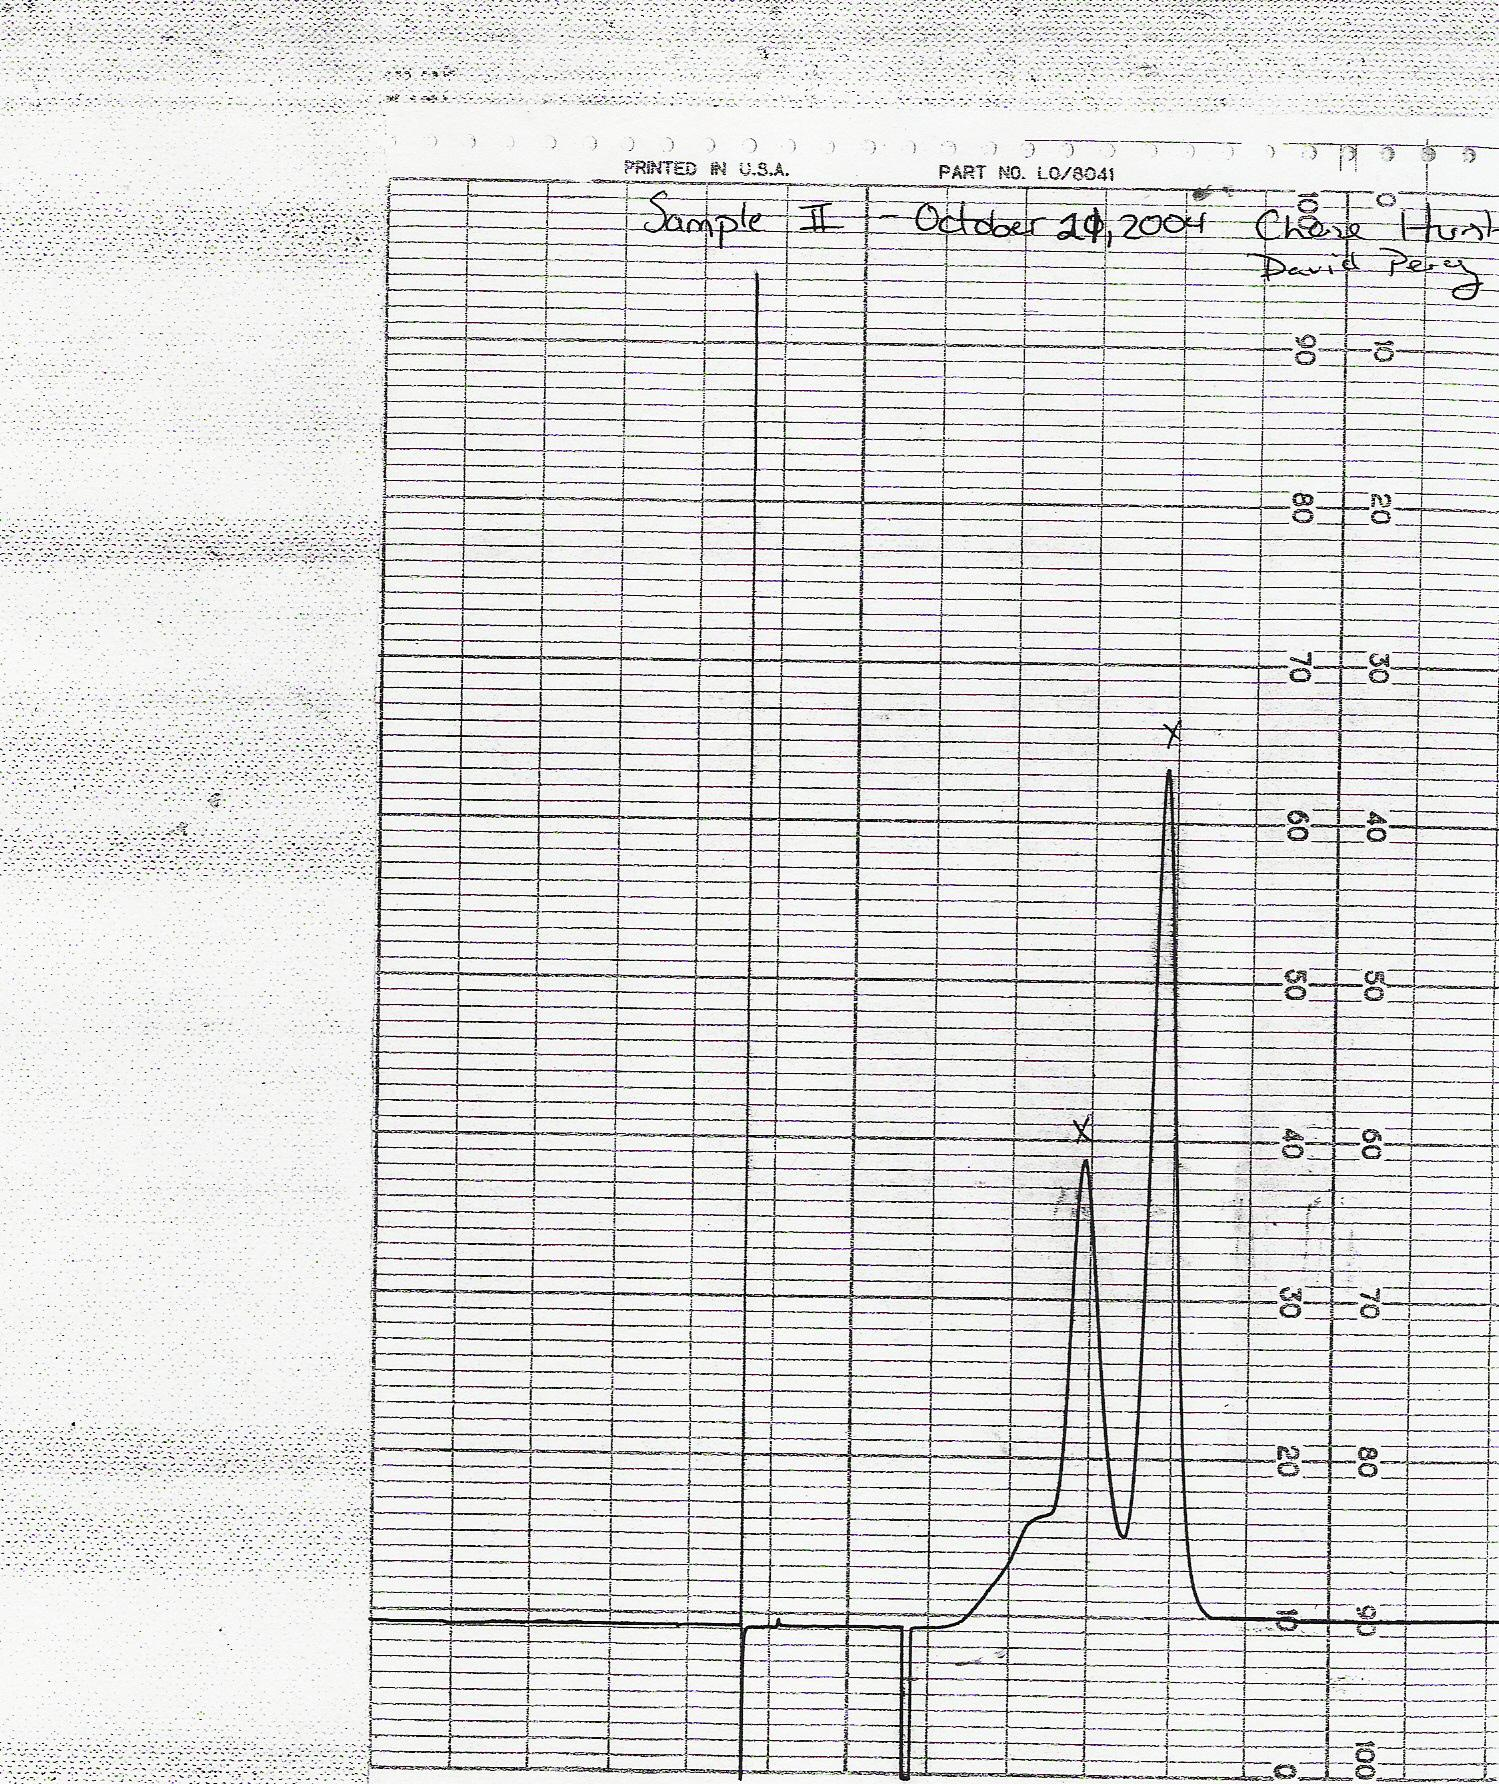 Theysis Of Gases By Chromatography A J Derose